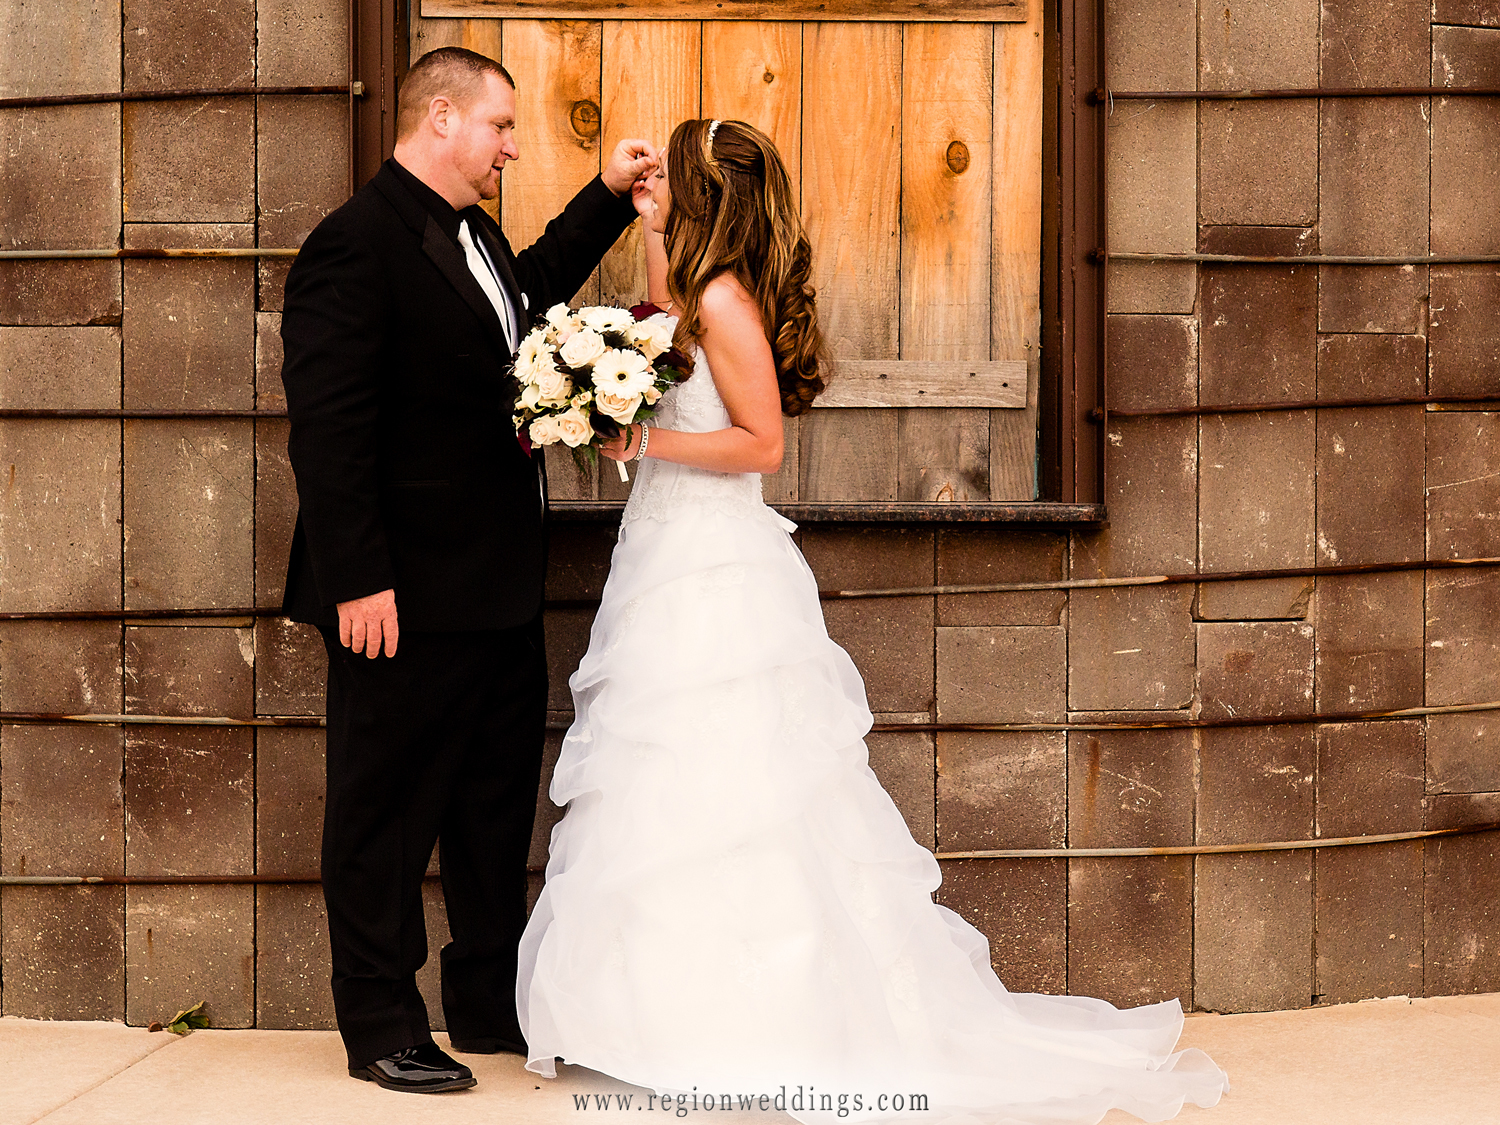 The bride and groom see each other for the first time outside County Line Orchard in Hobart, Indiana.